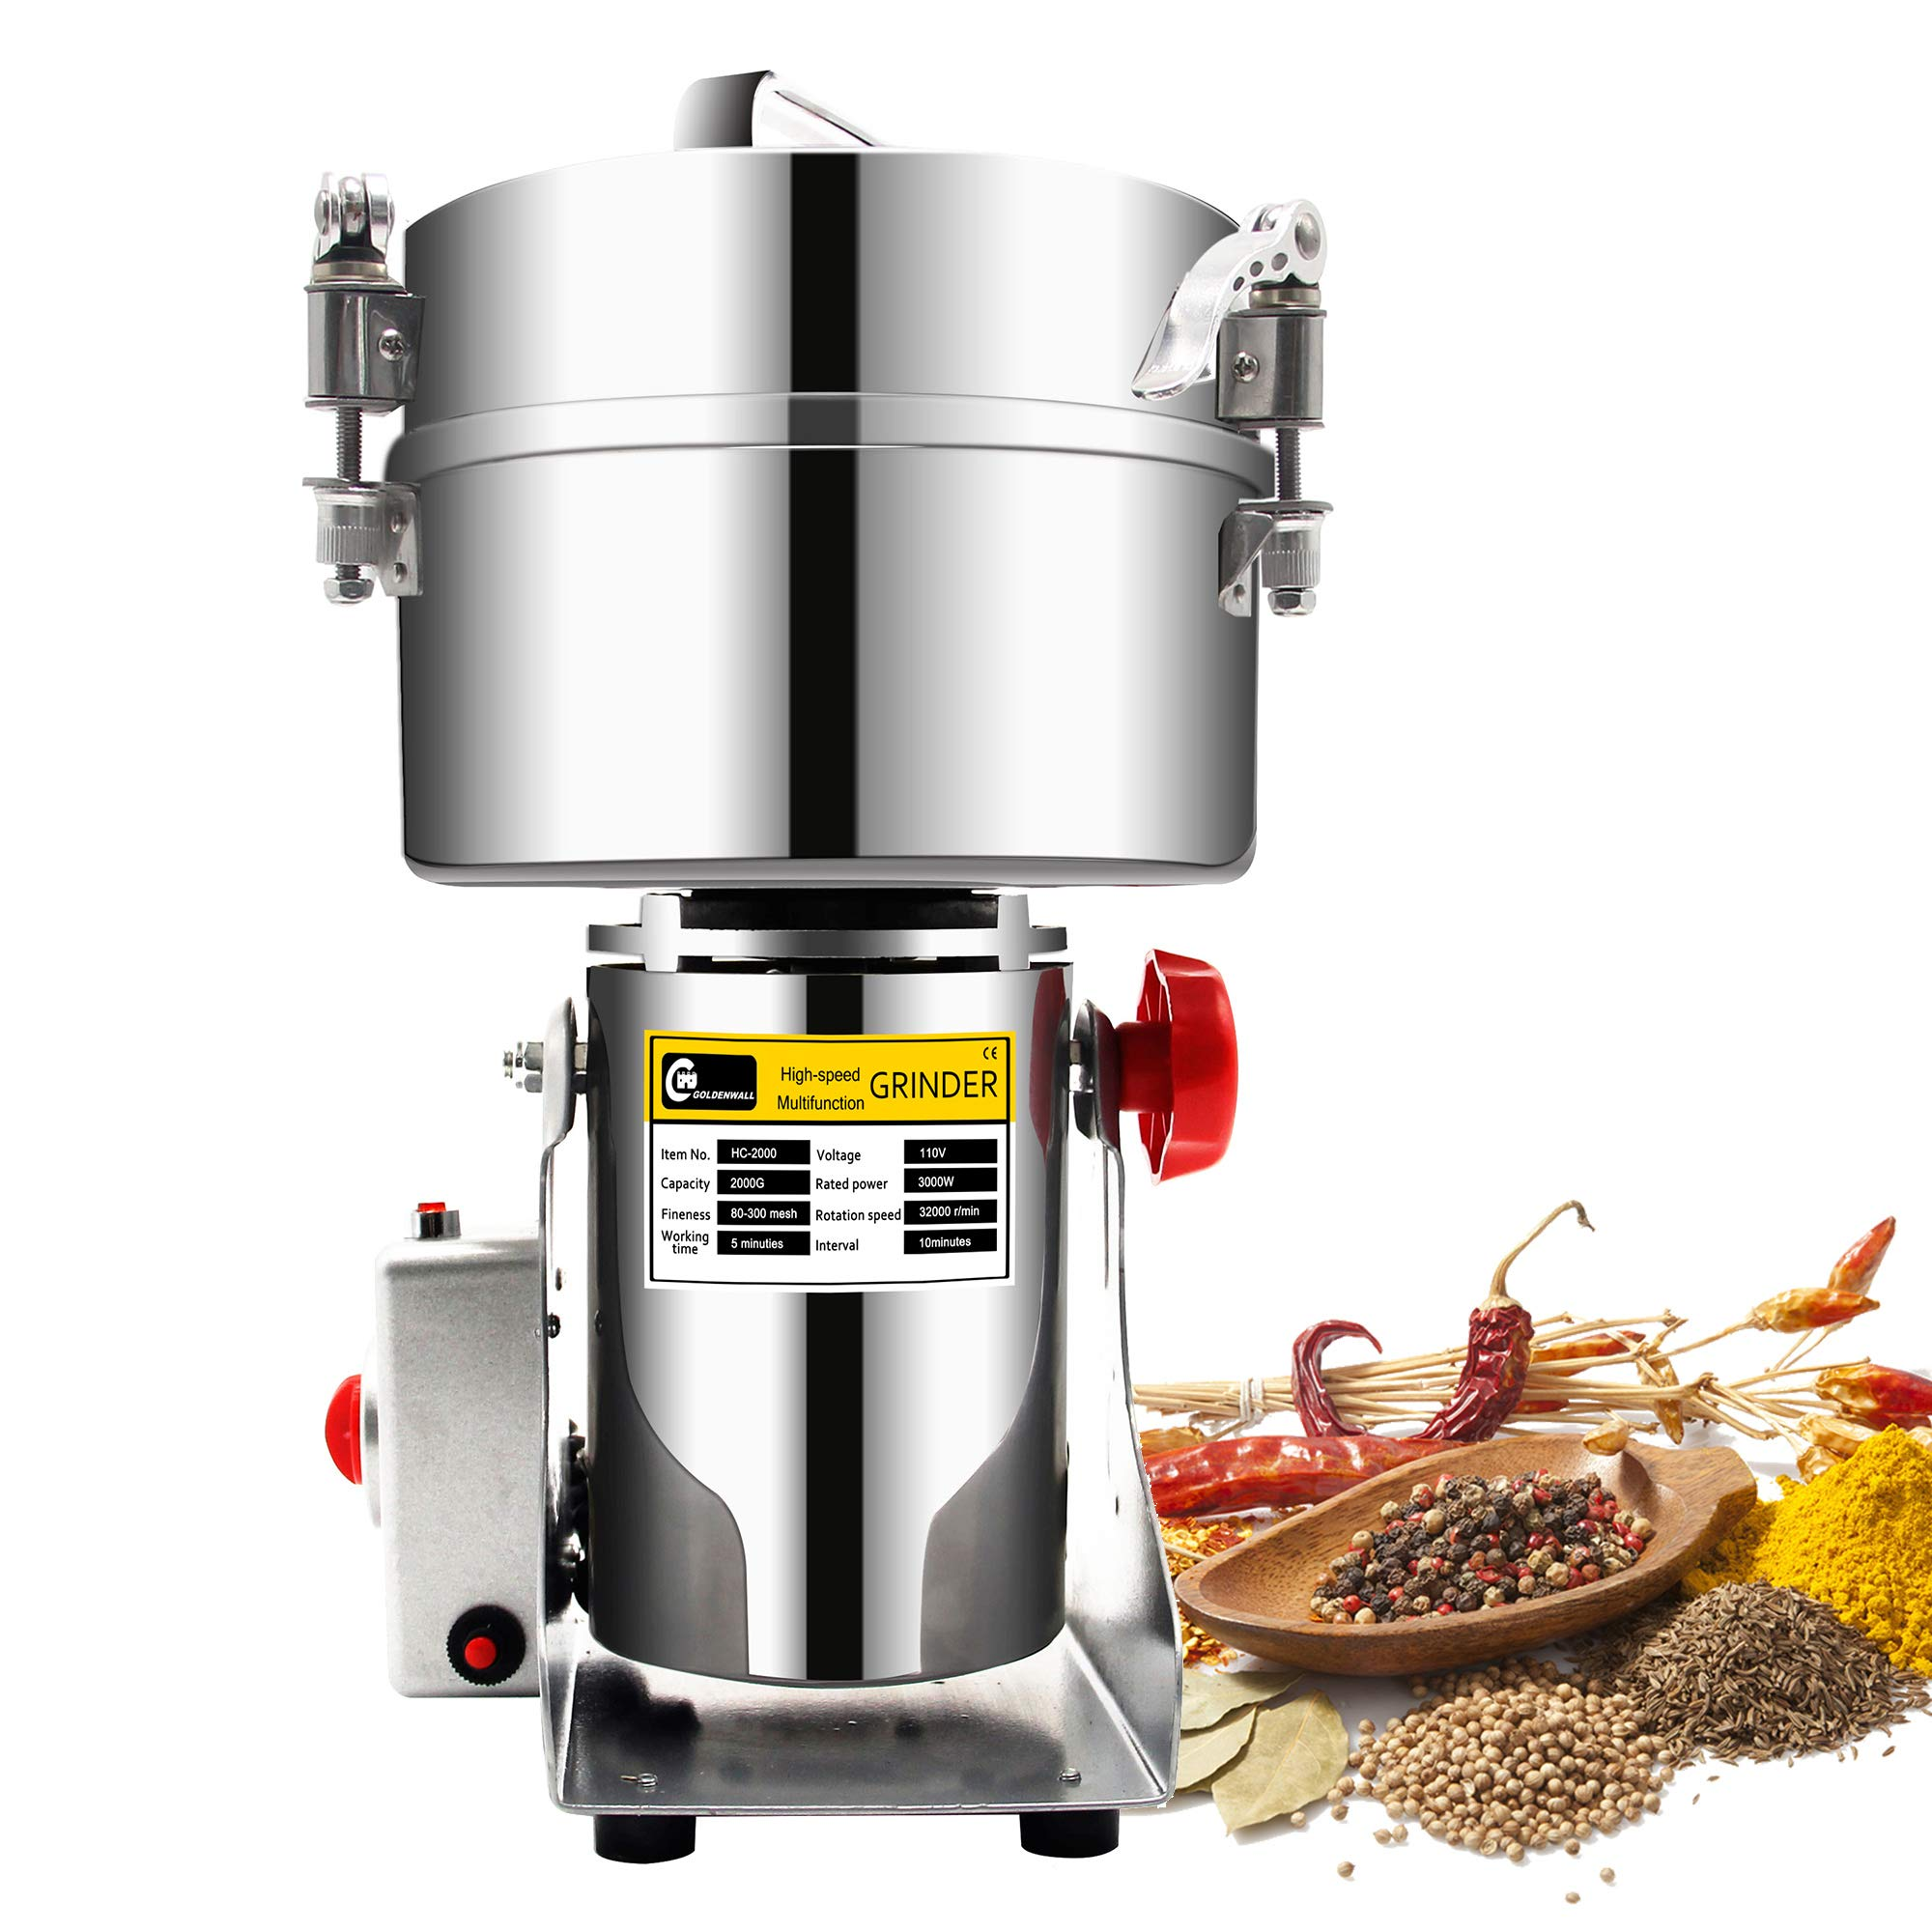 CGOLDENWALL 2500g Commercial Electric Grain Grinder Mill Spice Grinder Grain Powder Grinder Grinding Machine Chinese medicine Spice Herb Grinder Flour Mill Pulverizer CE approved